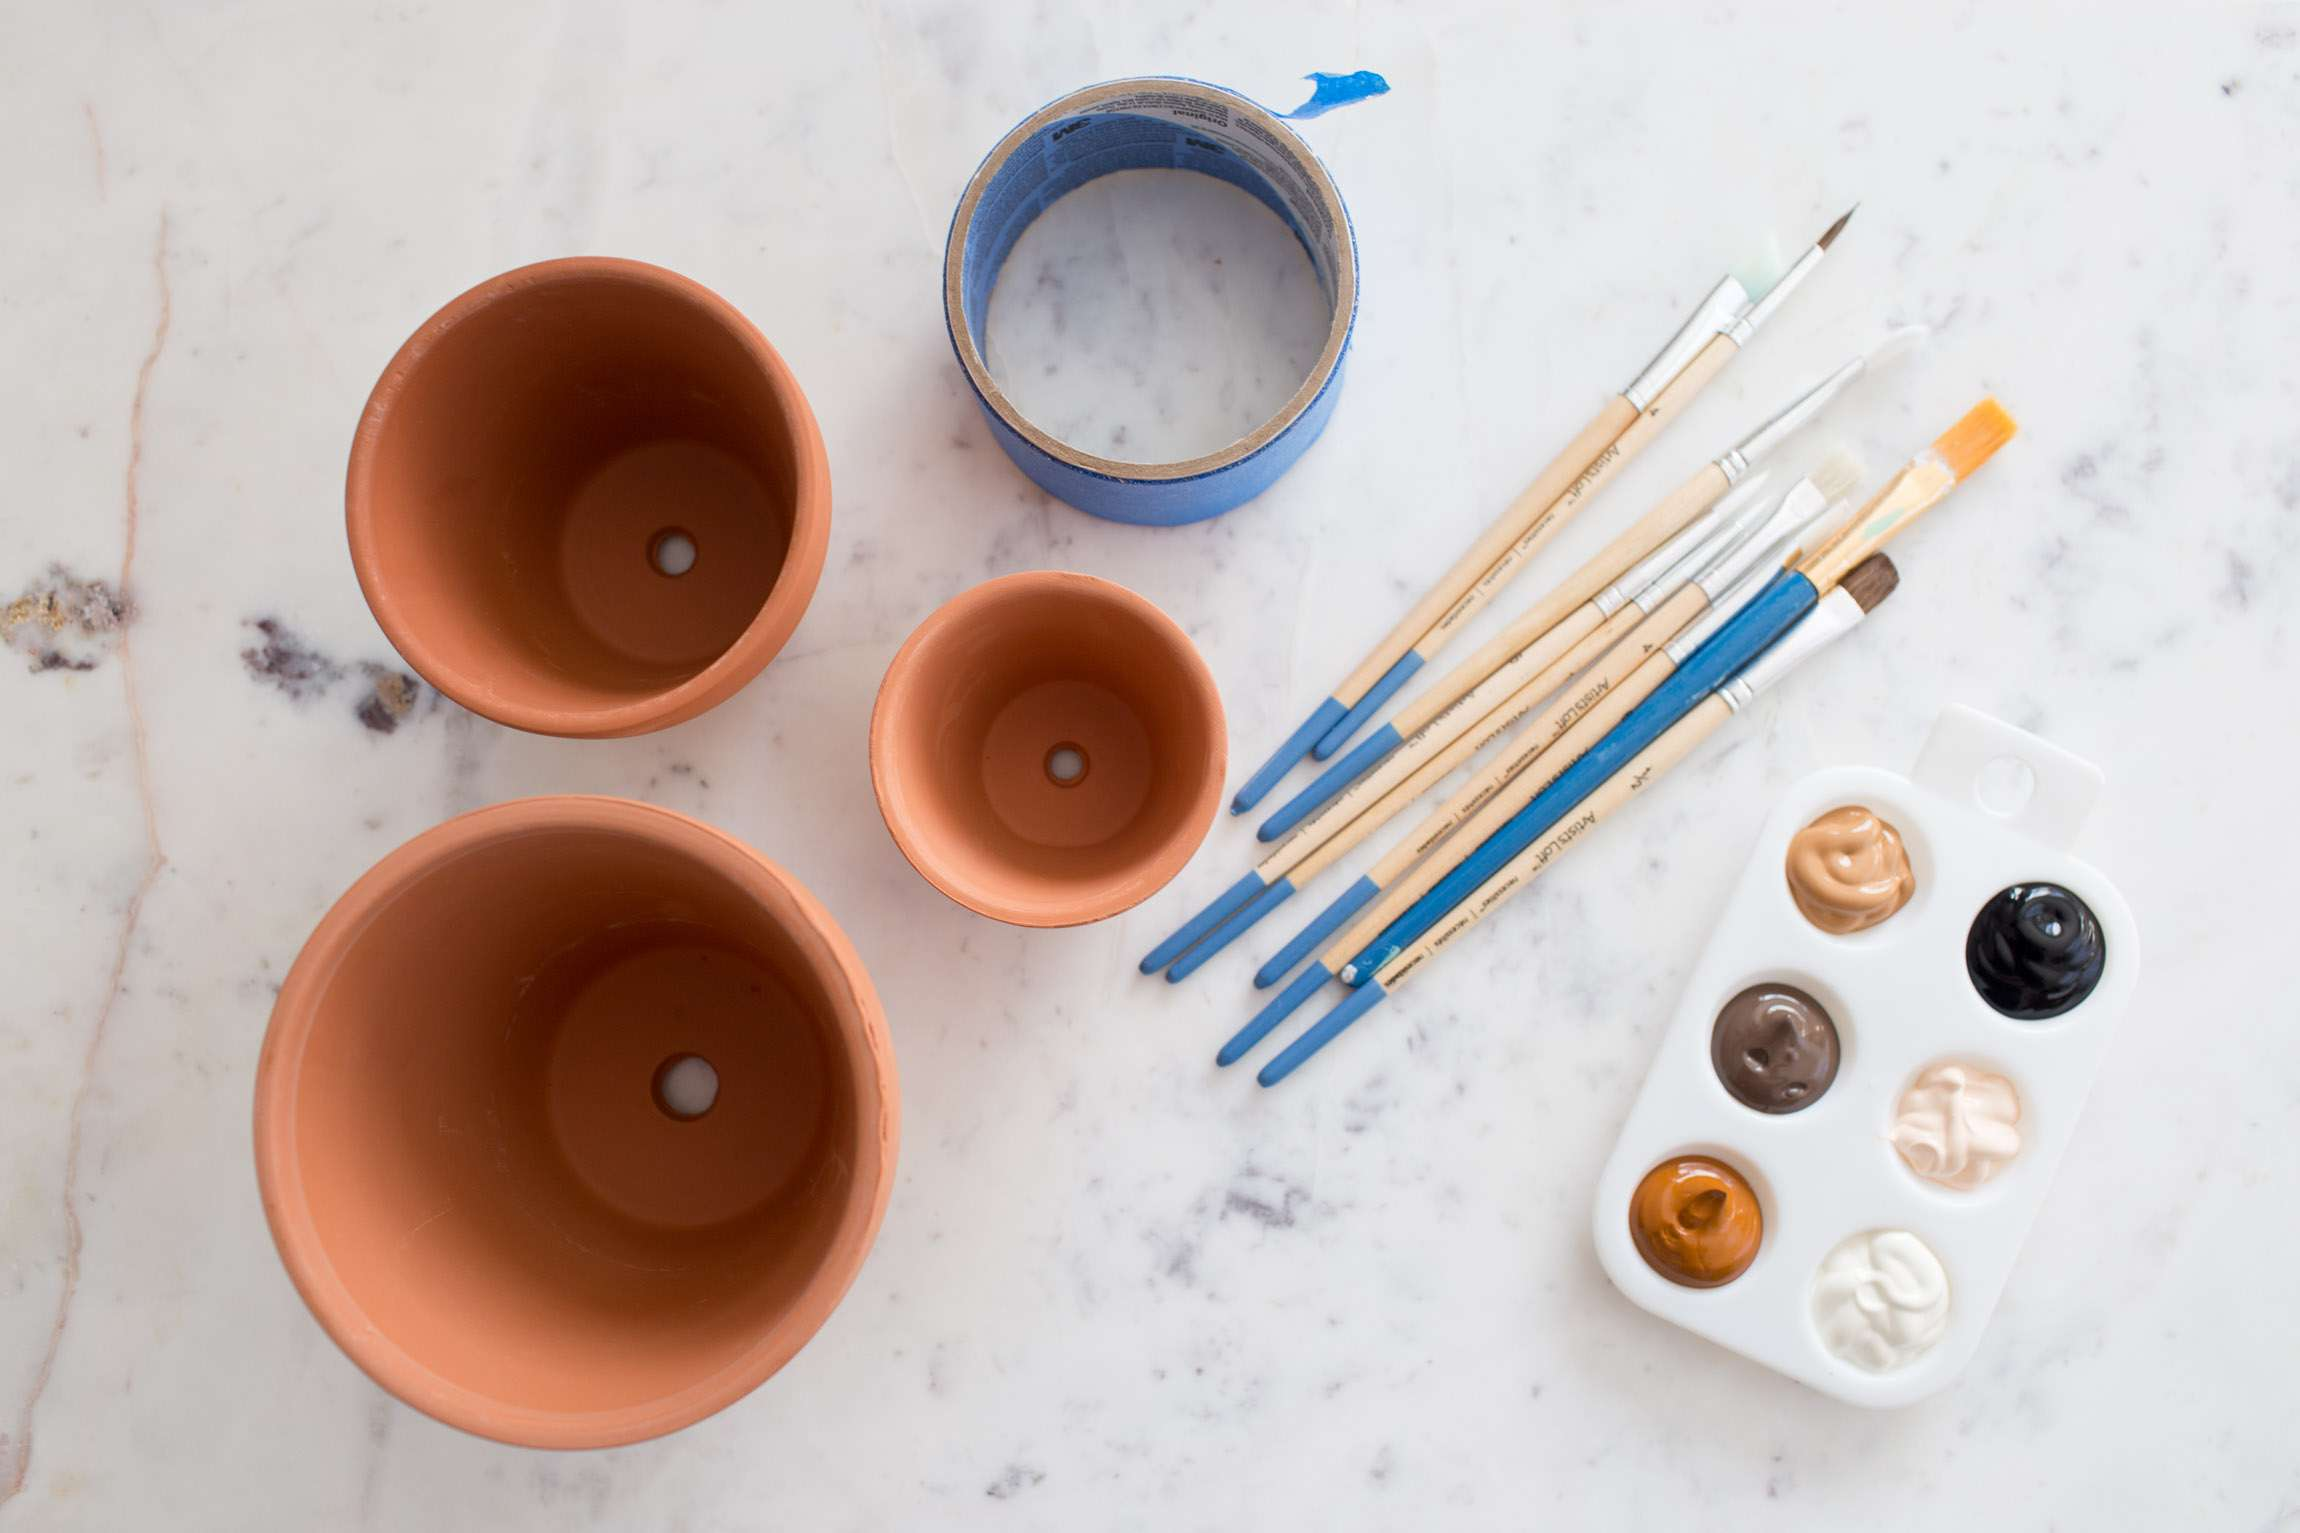 Supplies for painted pots